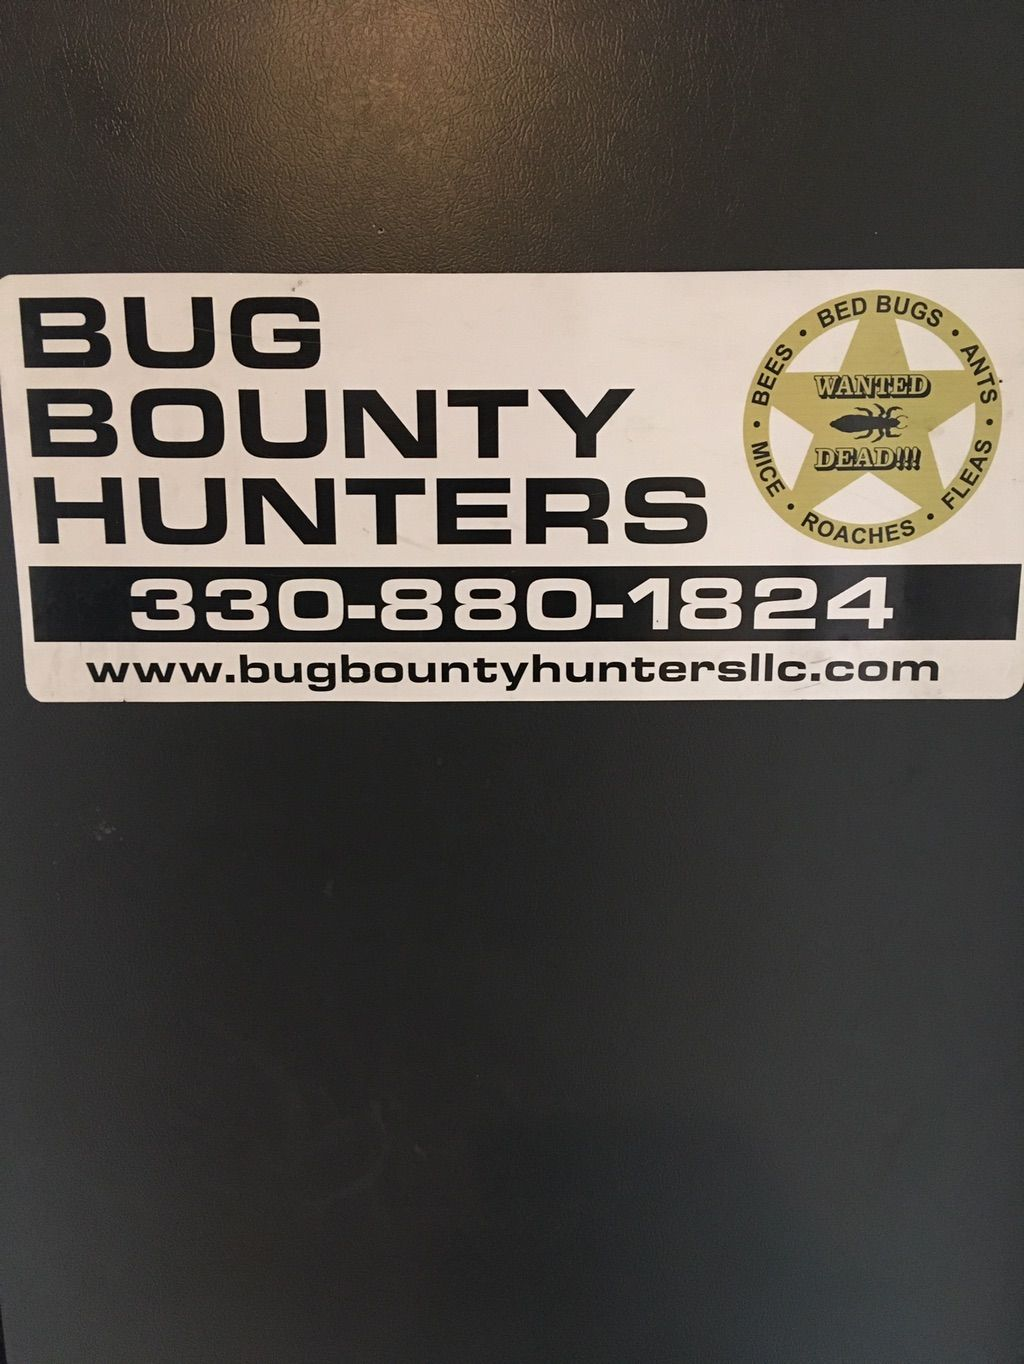 Bug Bounty Hunters LLC